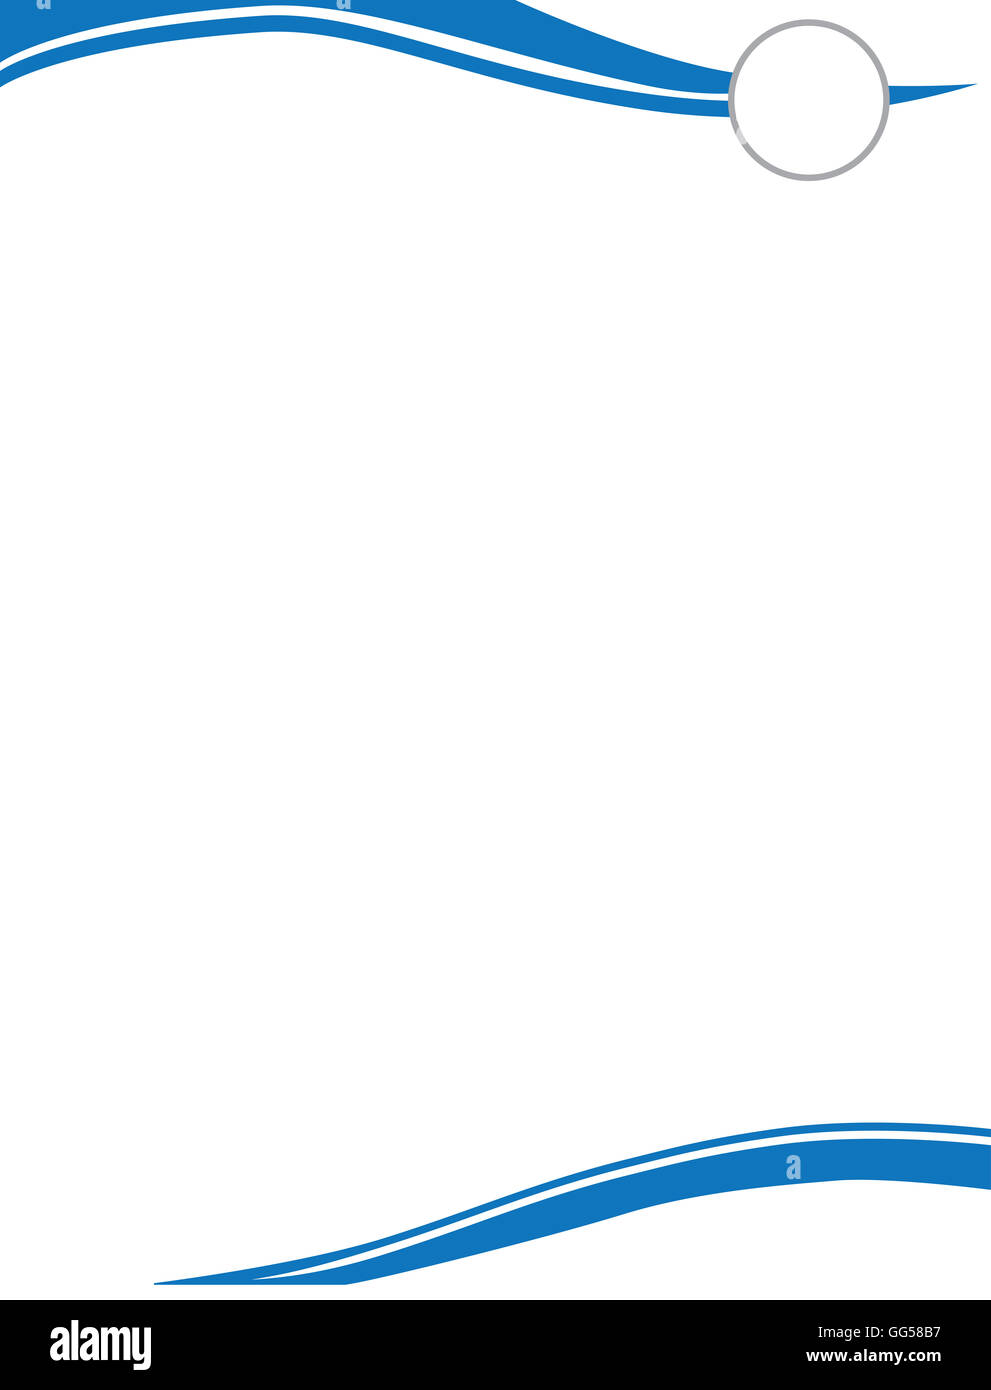 Blue Wave Letterhead Template with Circle for Logo - Stock Image